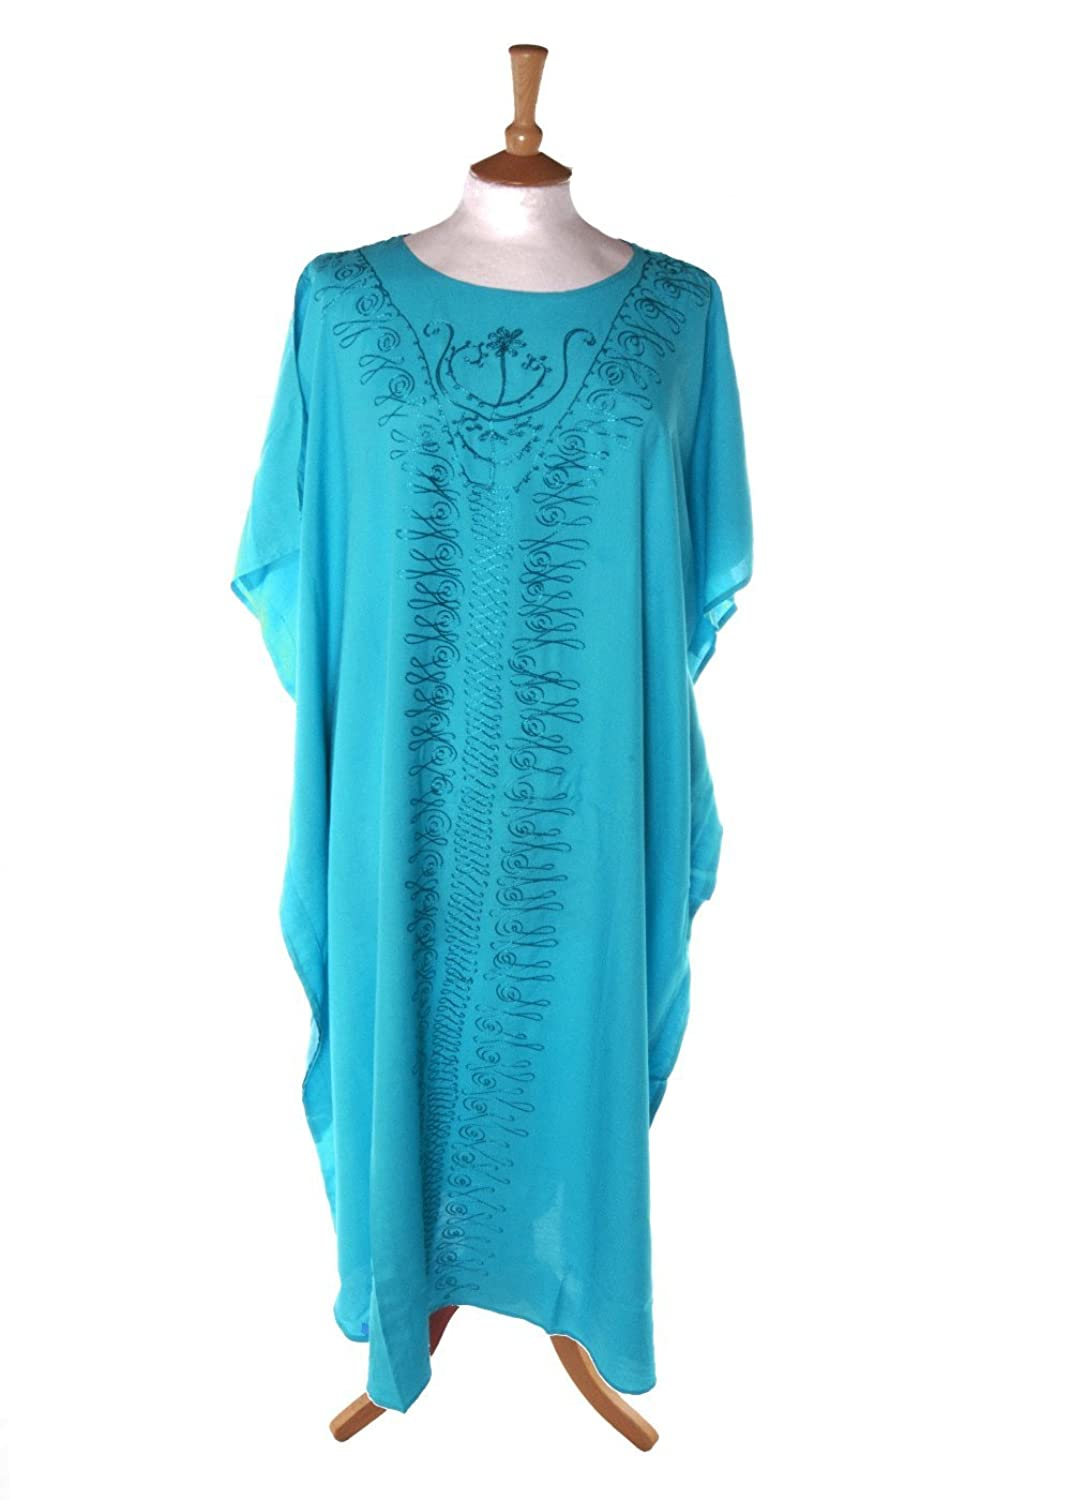 Didi 6064 Plain Beaded Kaftan in Turquoise sizes 14-34